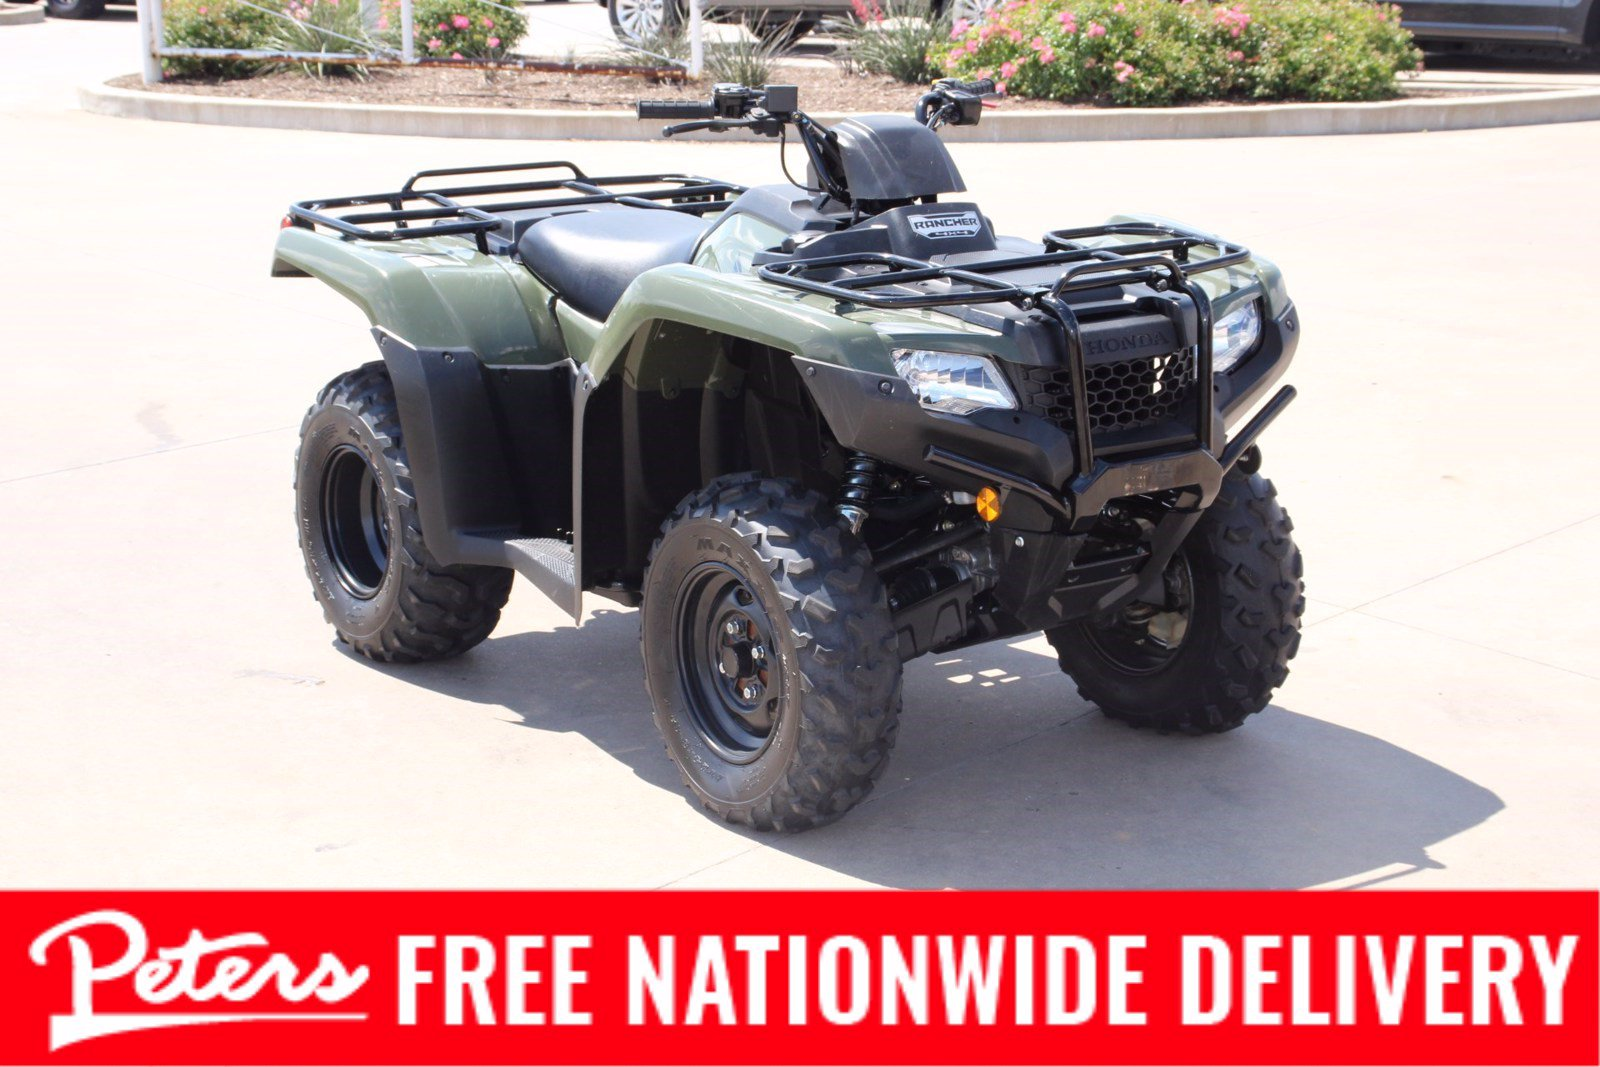 Pre-Owned 2019 Honda TRX420FM1 FOURTRAX RANCHER (4X4)